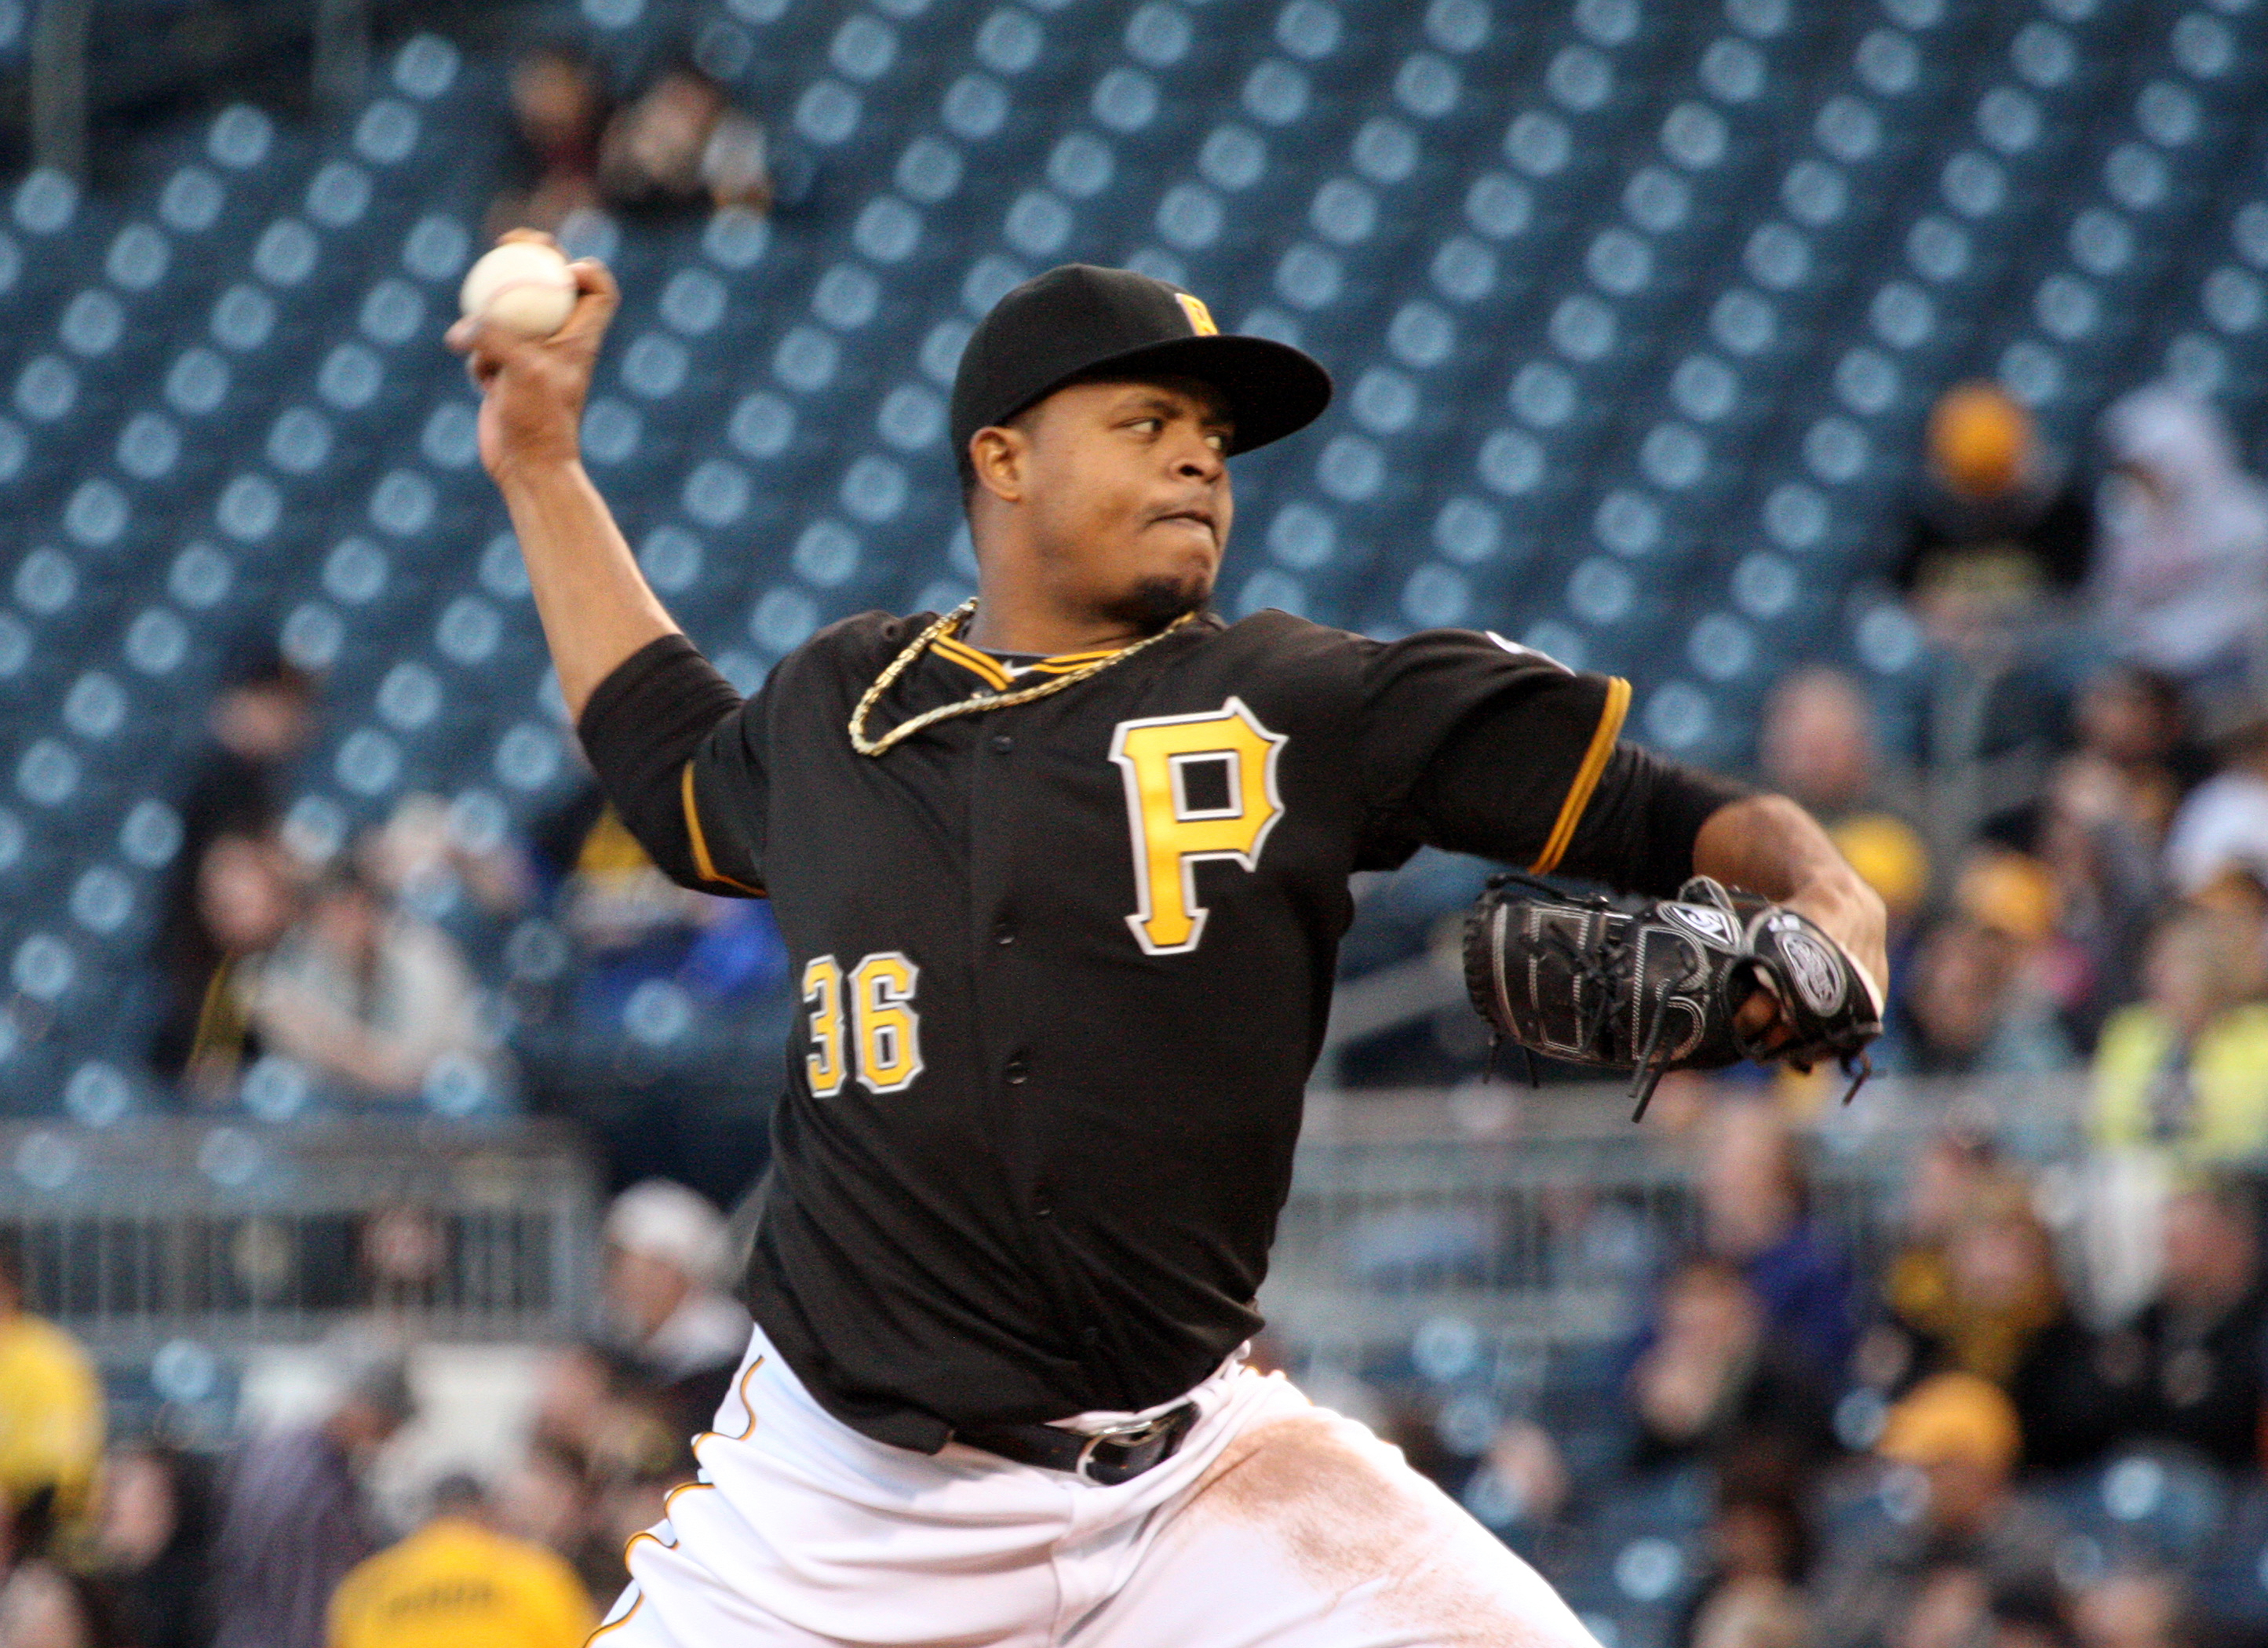 Volquez's best season came in 2008, when he won 17 games and struck out 206 batters. (Photo Credit: David Hague)